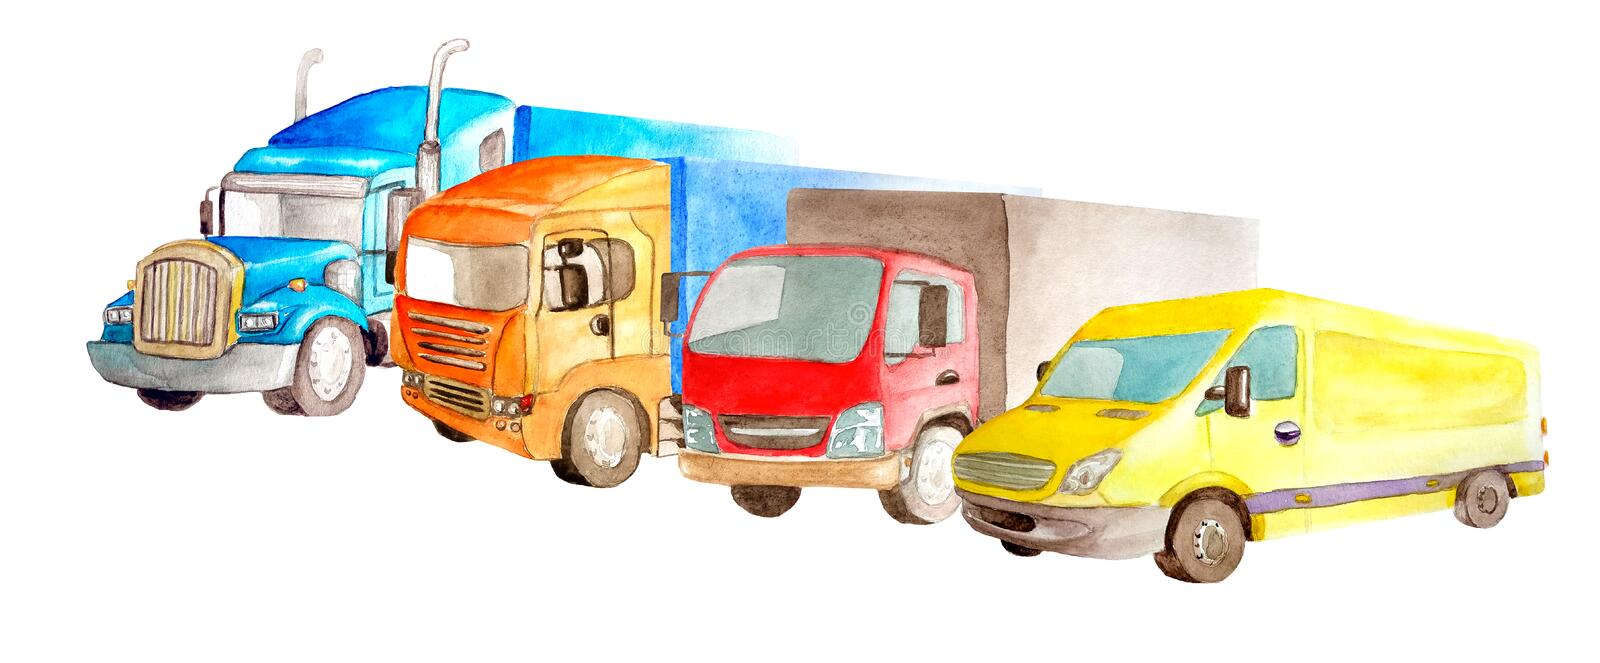 Watercolor park of trucks, lorries, van of different colors, truck models and designs stand side by side on a white background royalty free illustration